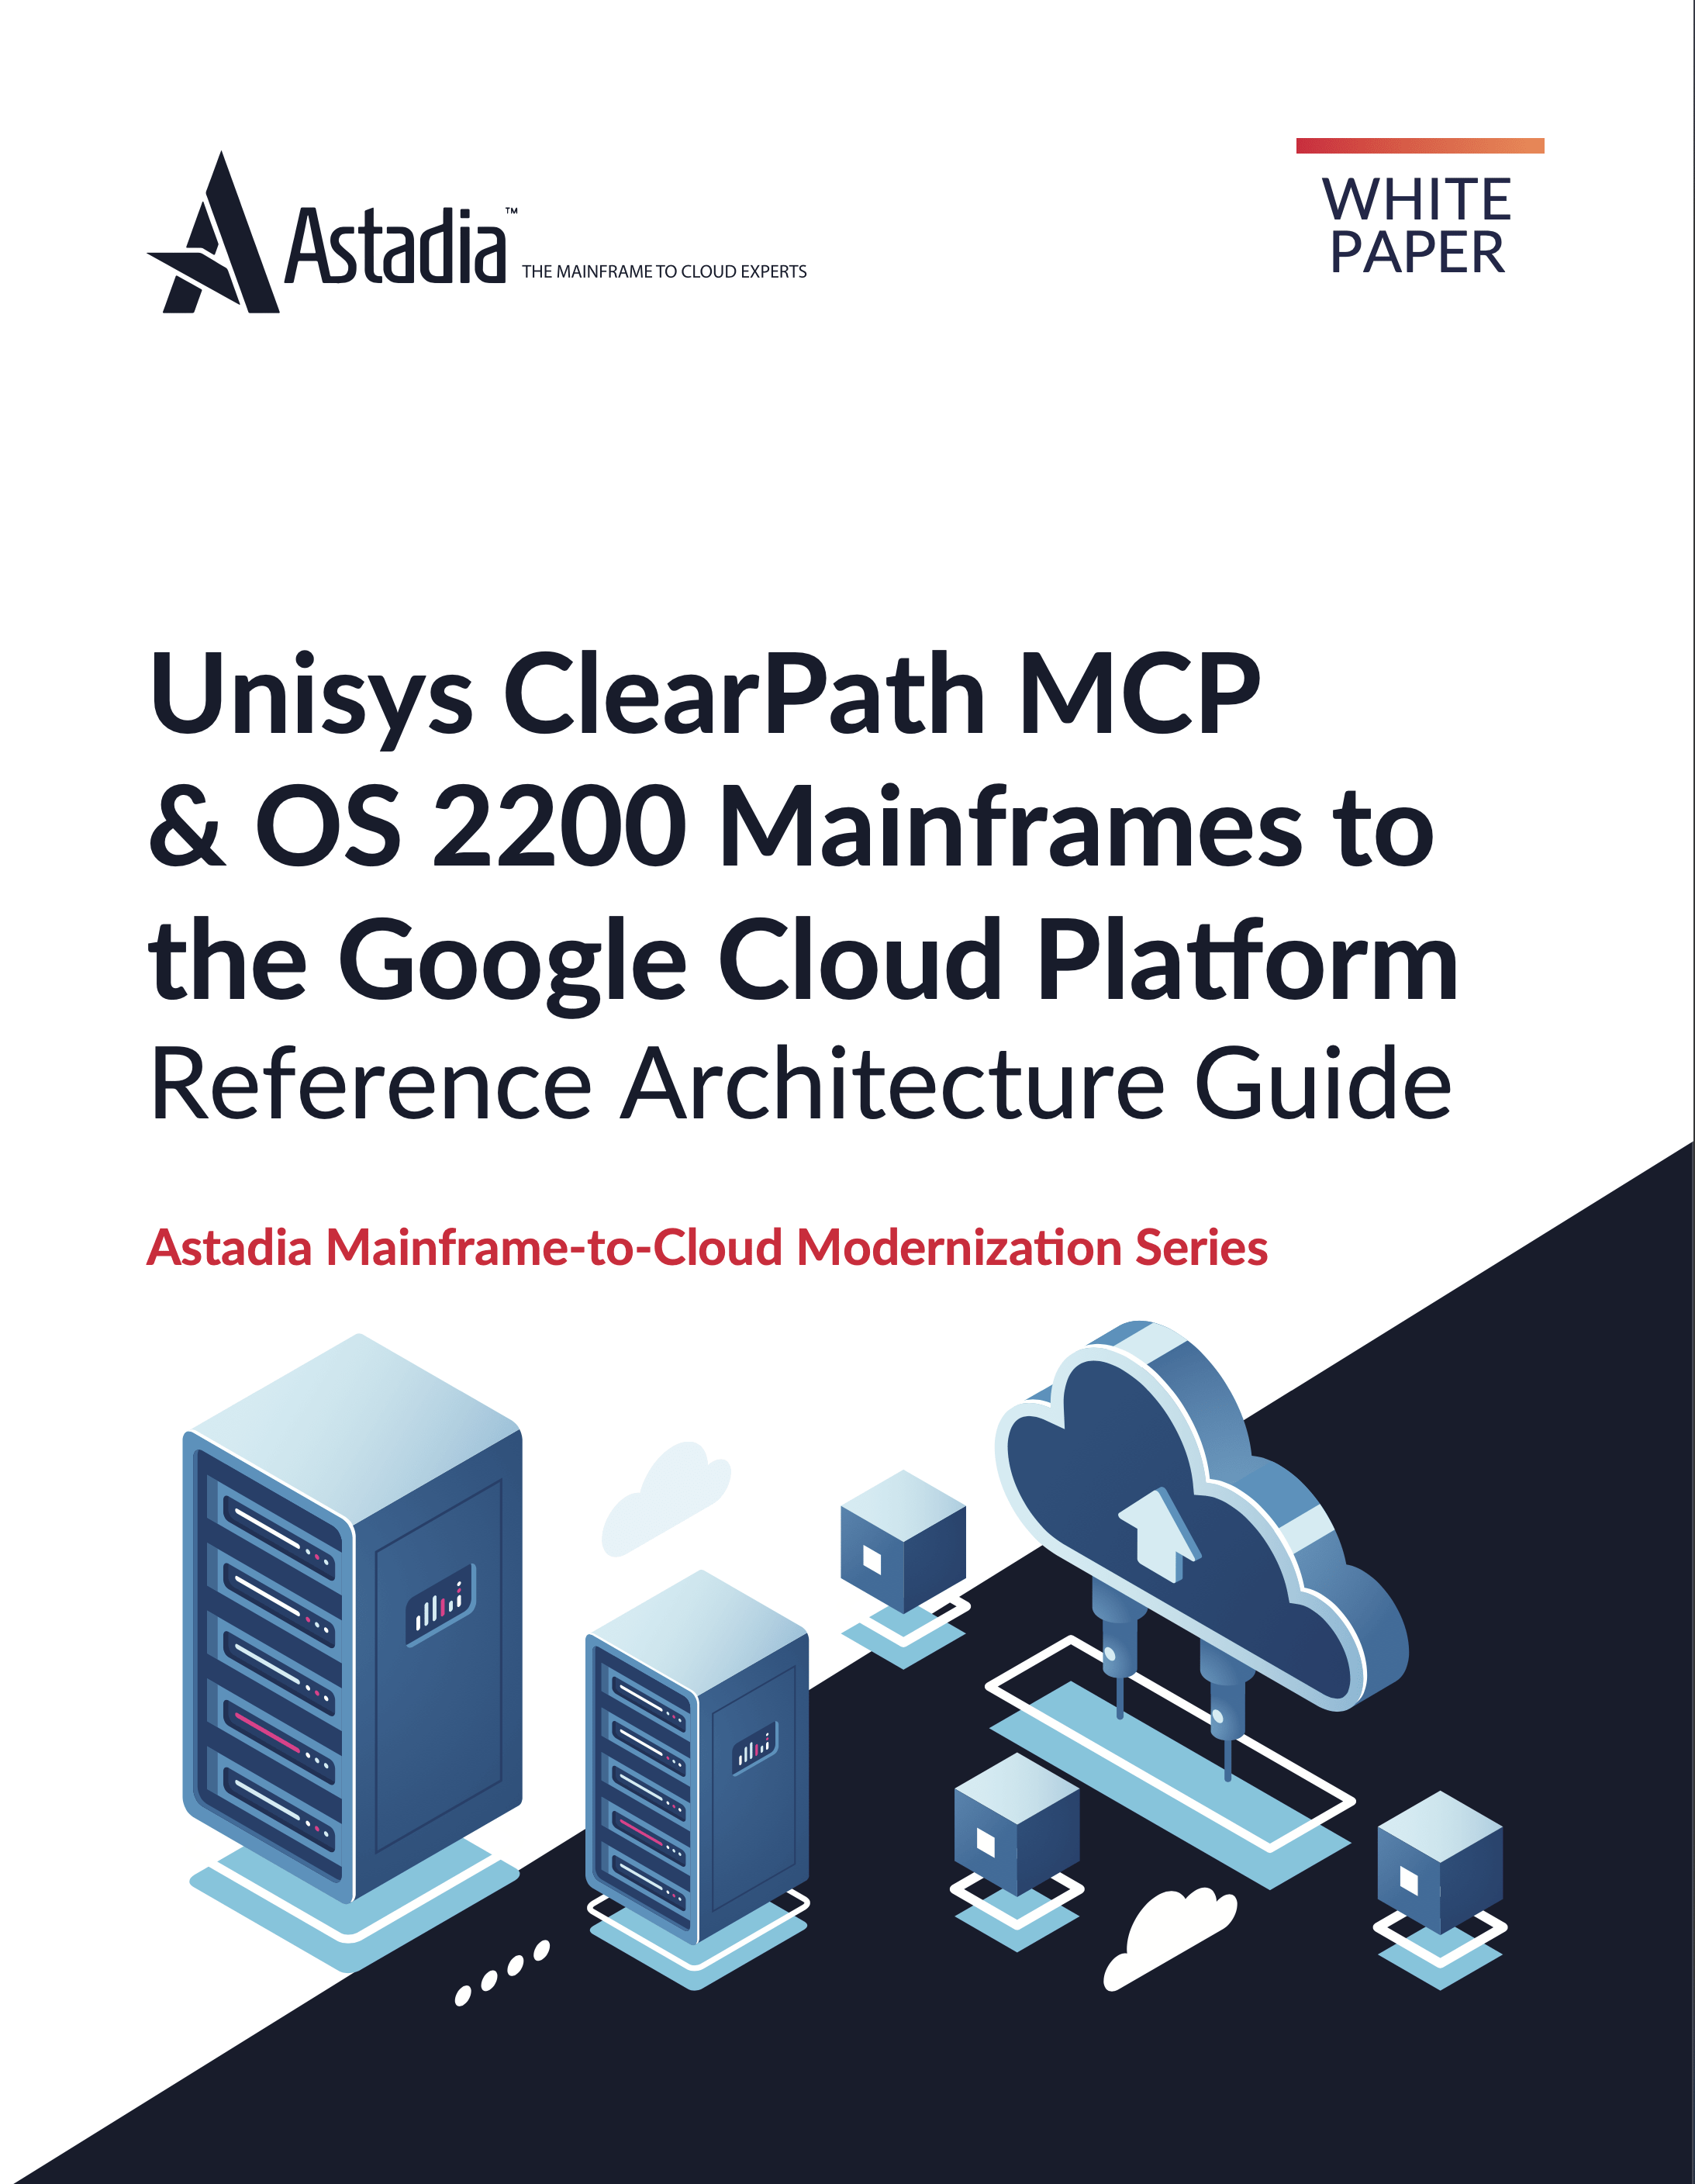 Unisys ClearPath MCP & OS 2200 Mainframes to the Google Cloud